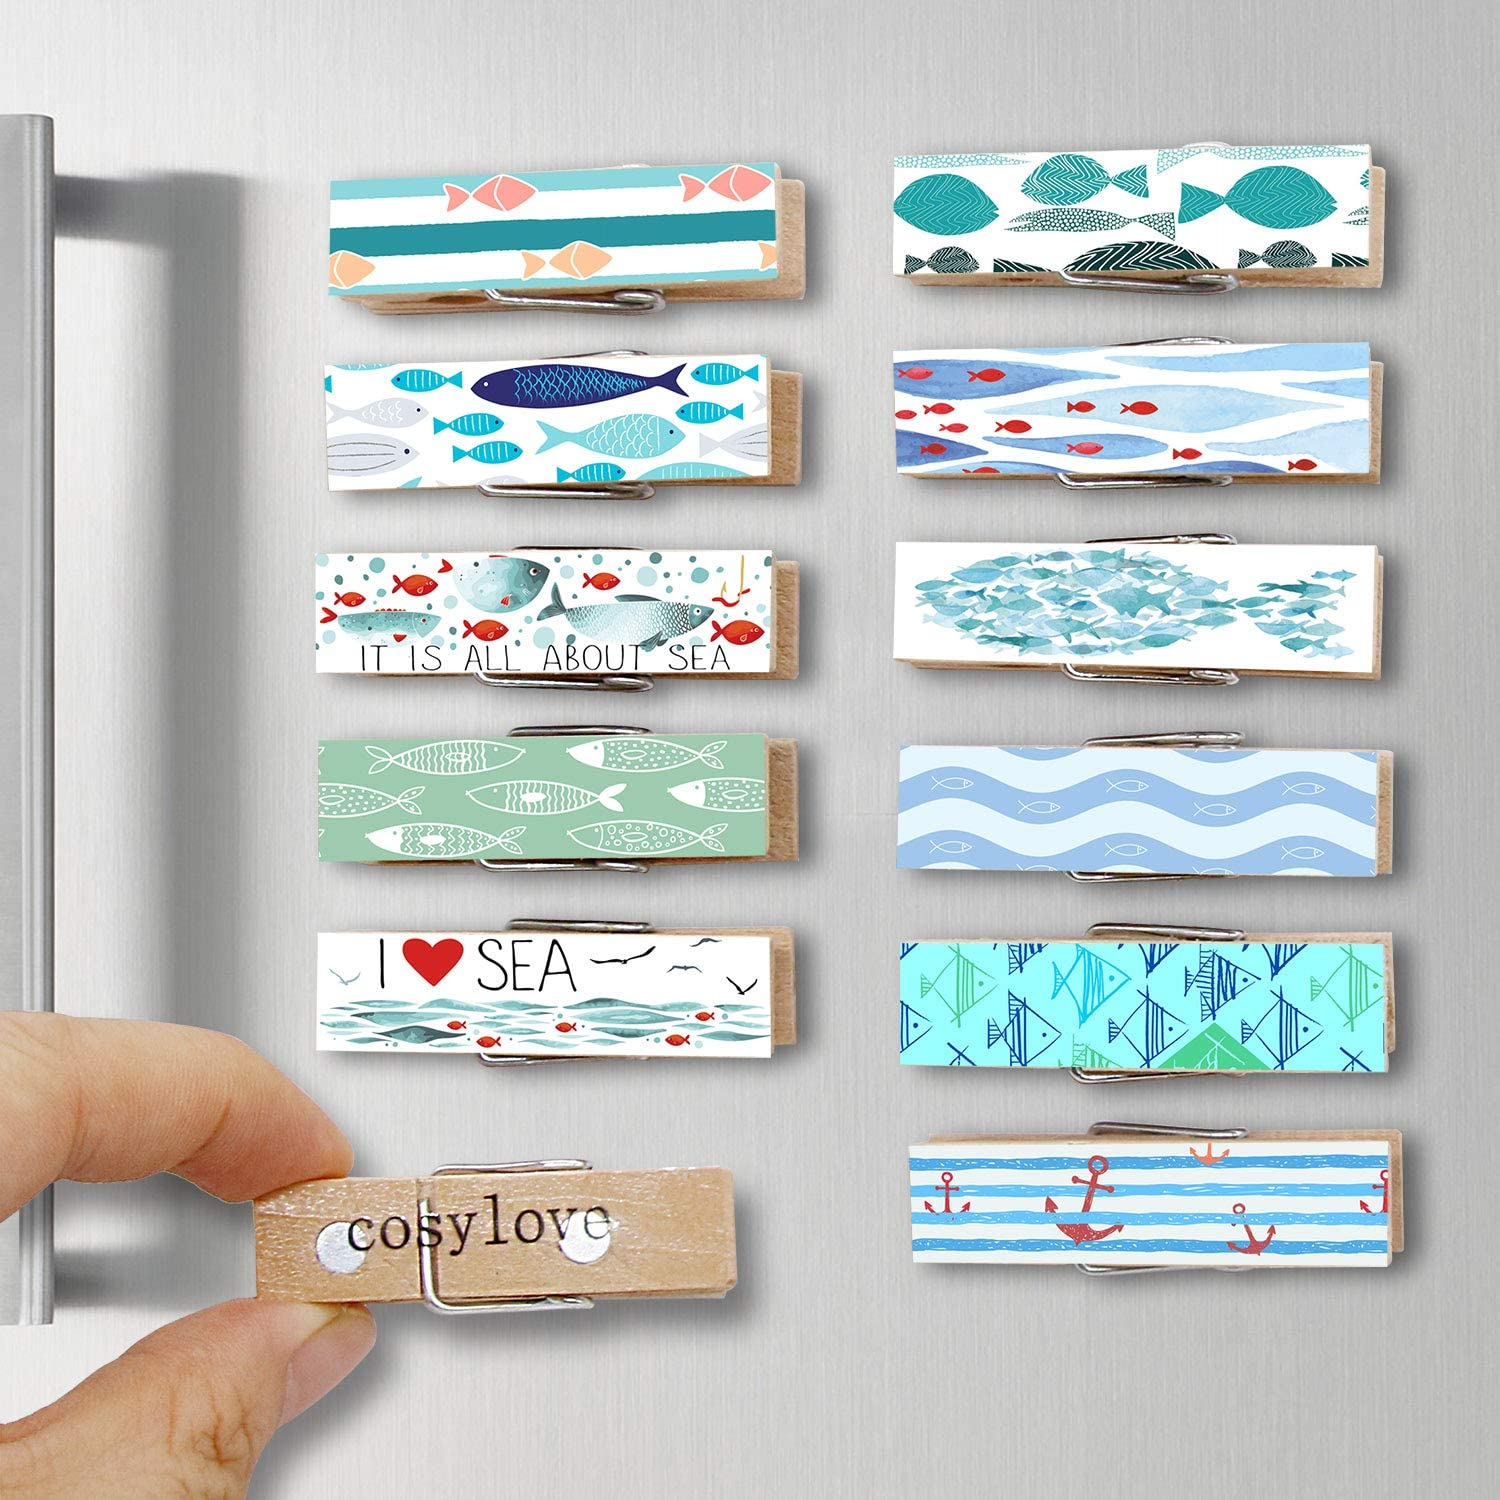 12pcs Refrigerator Magnet Clips by Cosylove-Decorative Magnetic Clips Made of Wood with Beautiful Patterns–Super Fridge Magnets for House Office Use - Display Photos,Memos, Lists, Calendars (Fish)